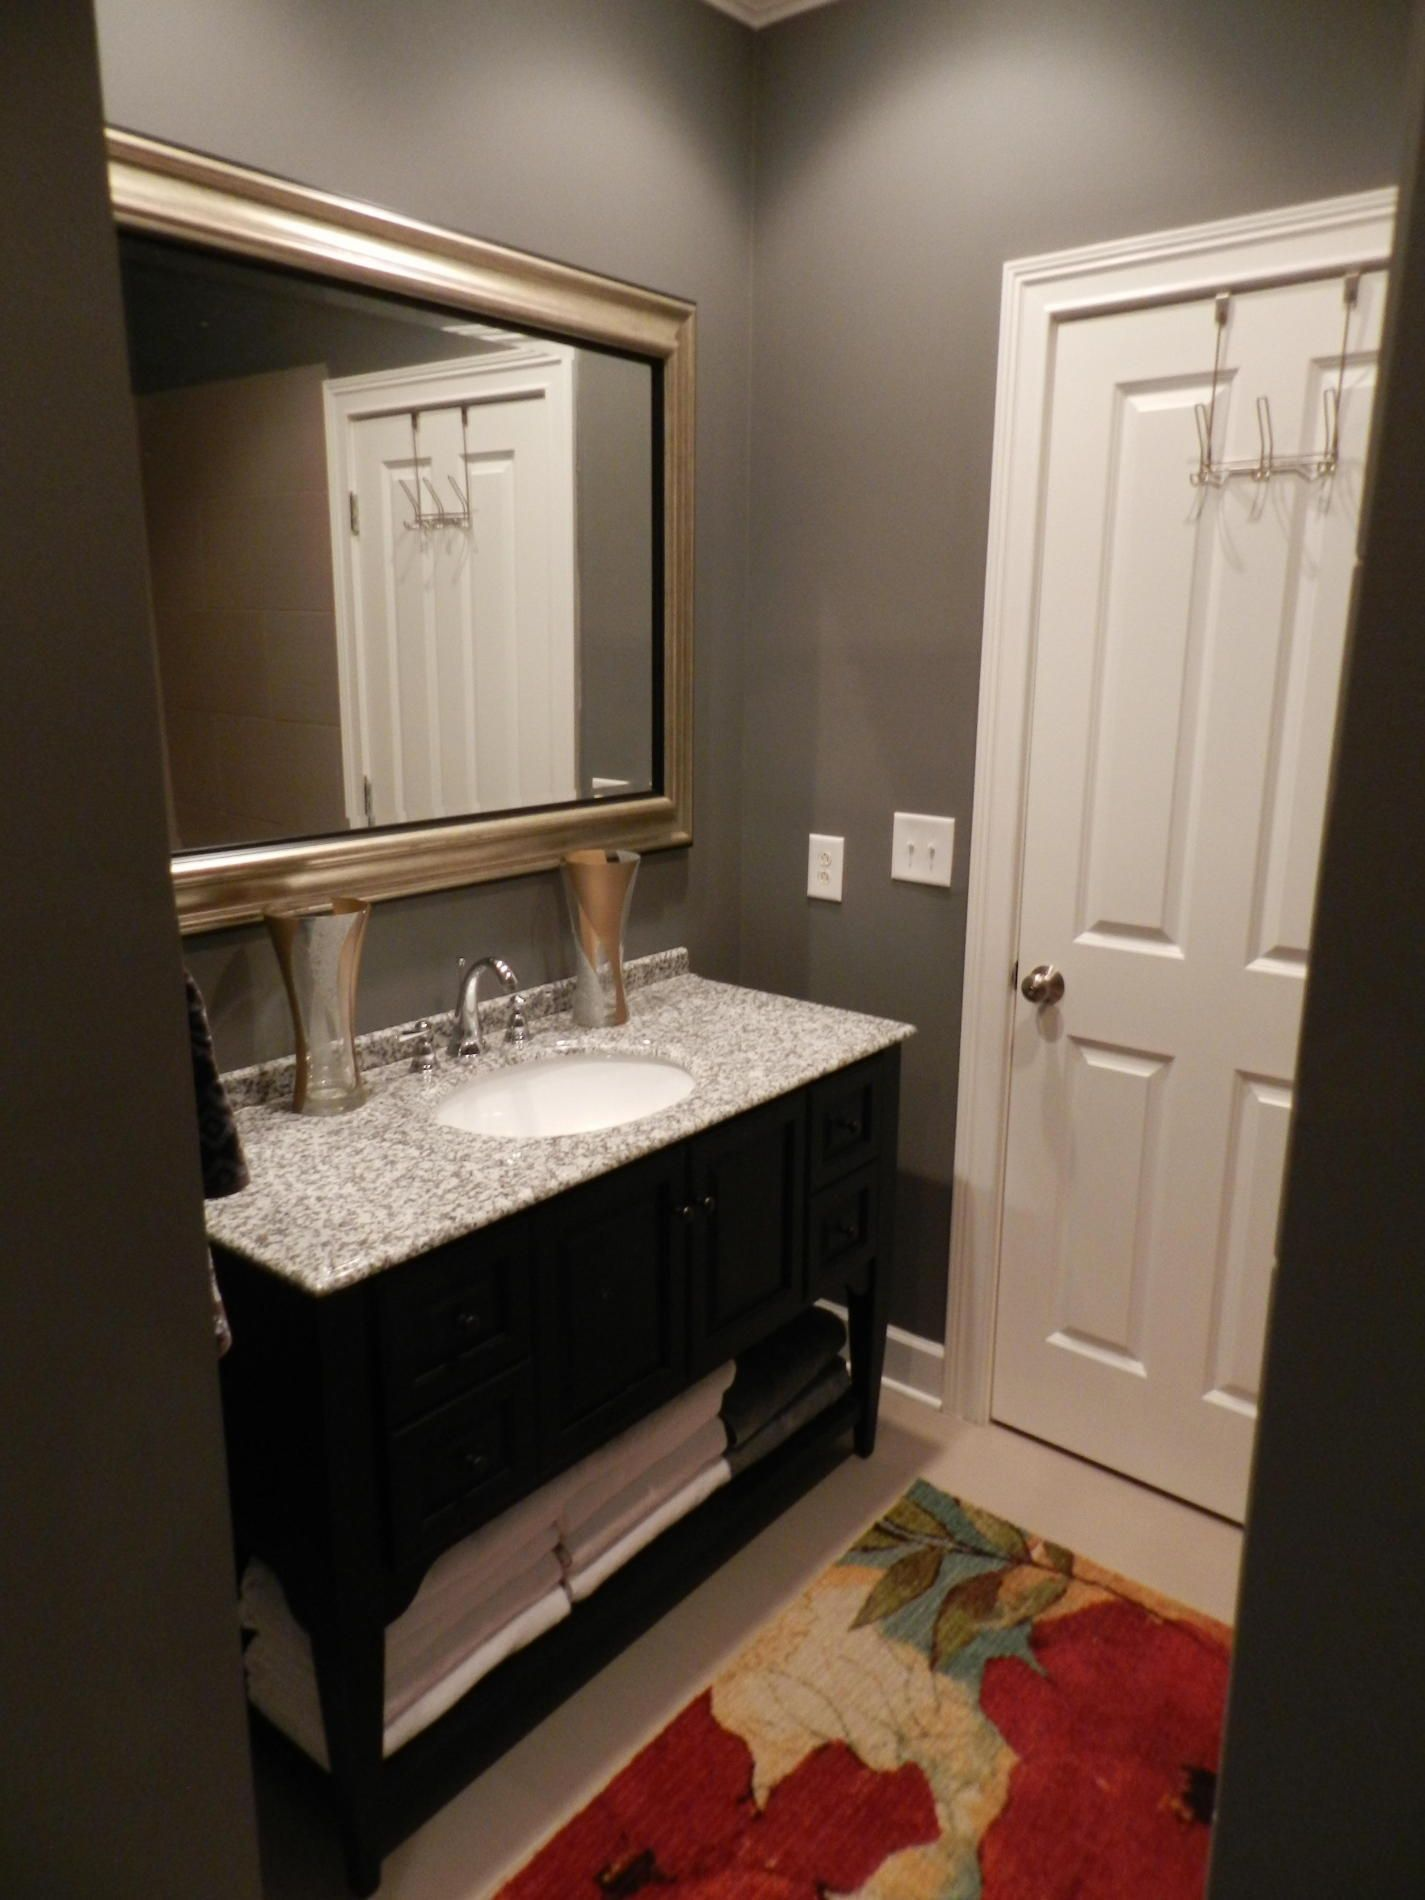 Besf of ideas remodel my bathroom how to remodel a modern